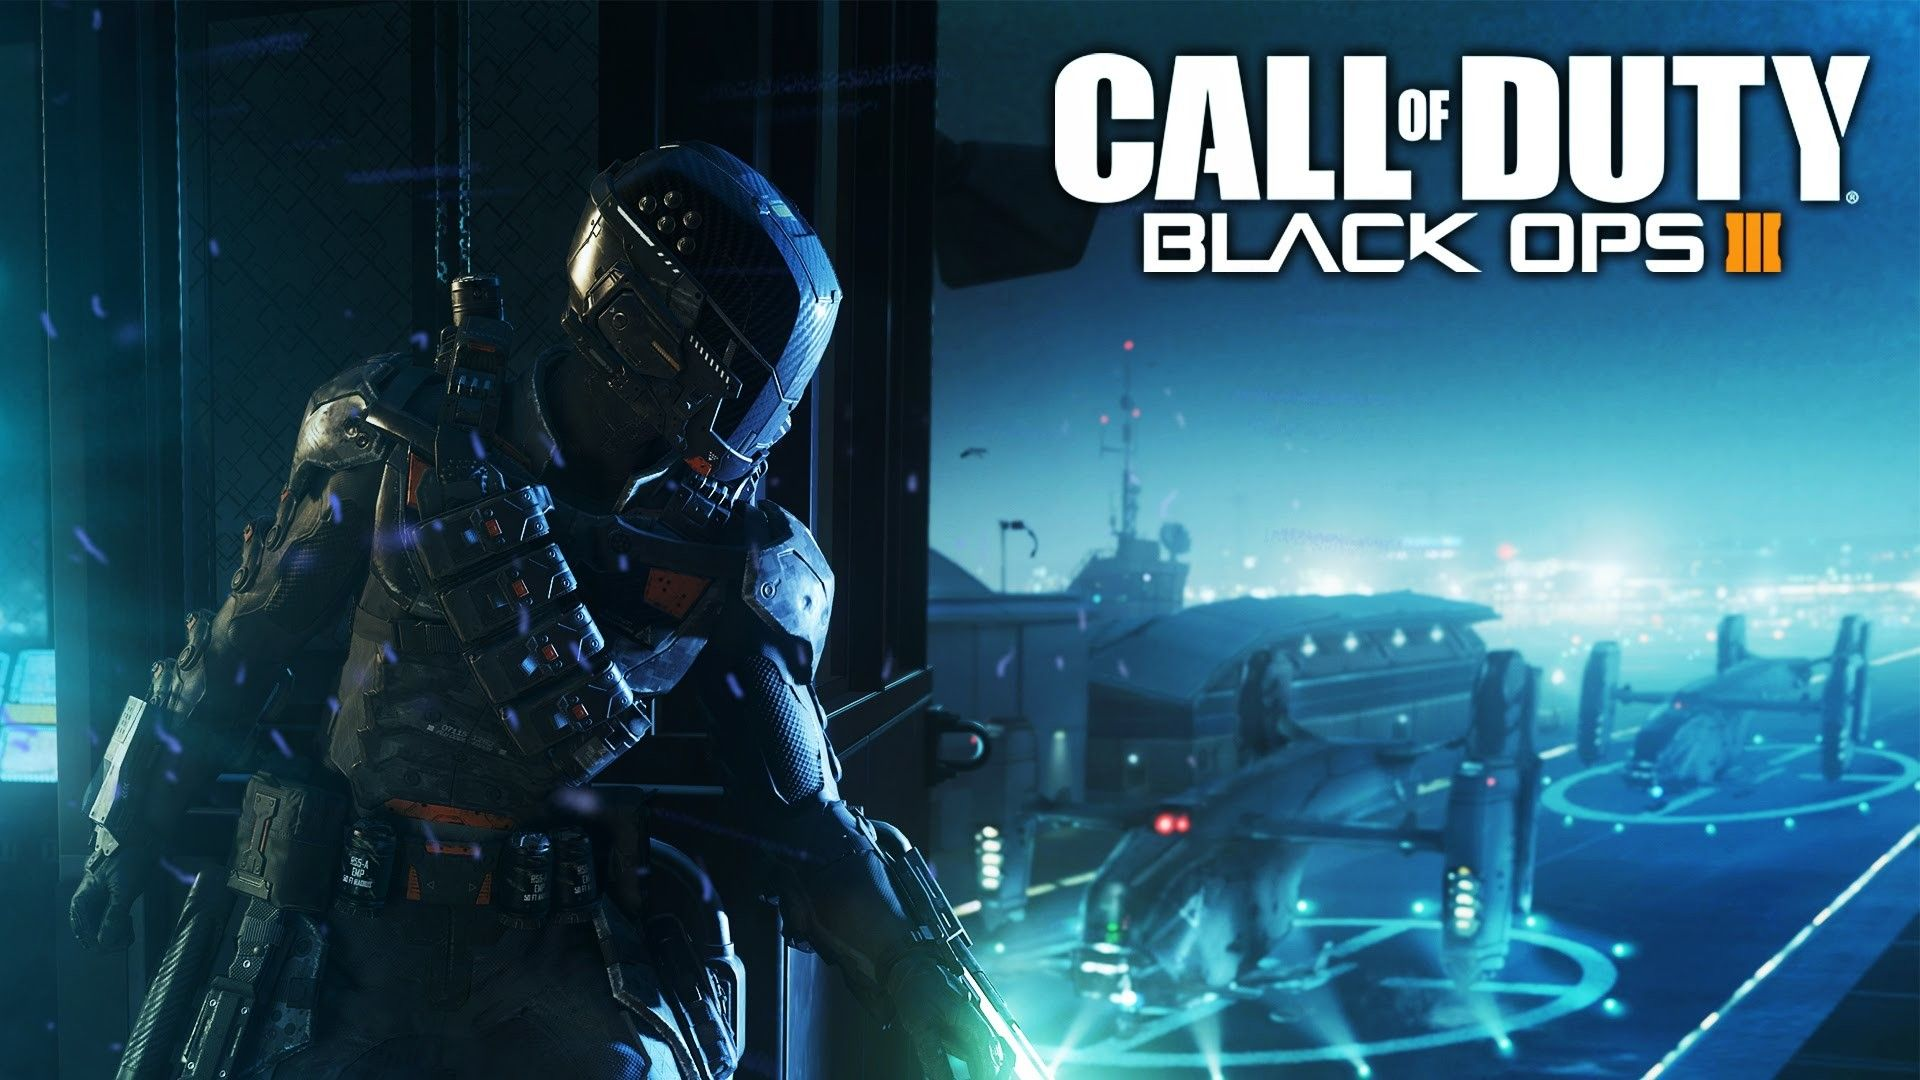 Call Of Duty Black Ops 3 Wallpapers 1080p Call Of Duty Black